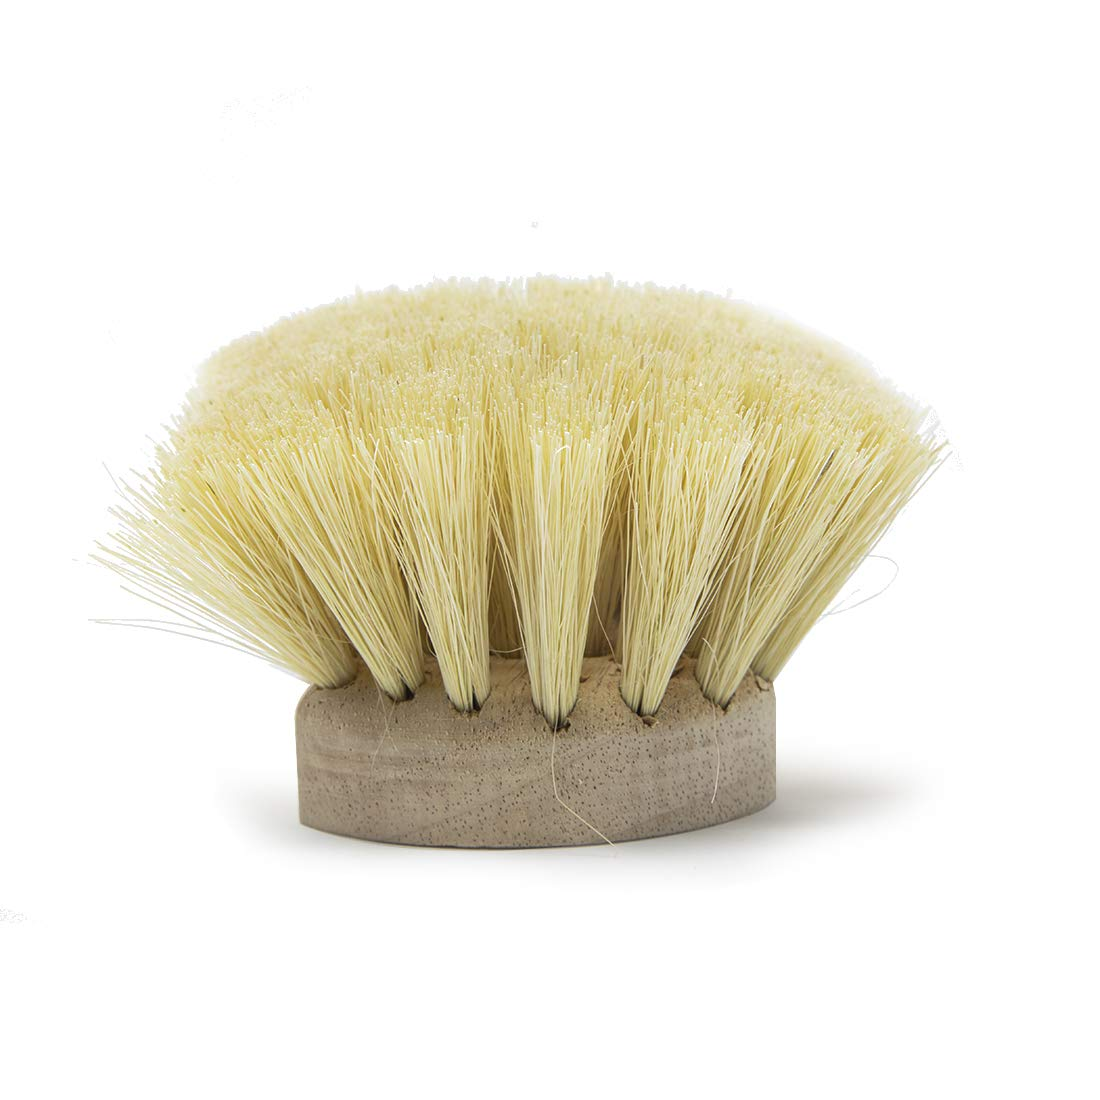 1-7//8 Trim Length Osborn 81018SP Short Handle Utility Scrub Brush 4-3//4 Brush Length Wood Block 4-3//4 Brush Length 5 Brush Width 10 Length 1-7//8 Trim Length 5 Brush Width Tampico Fill 10 Length